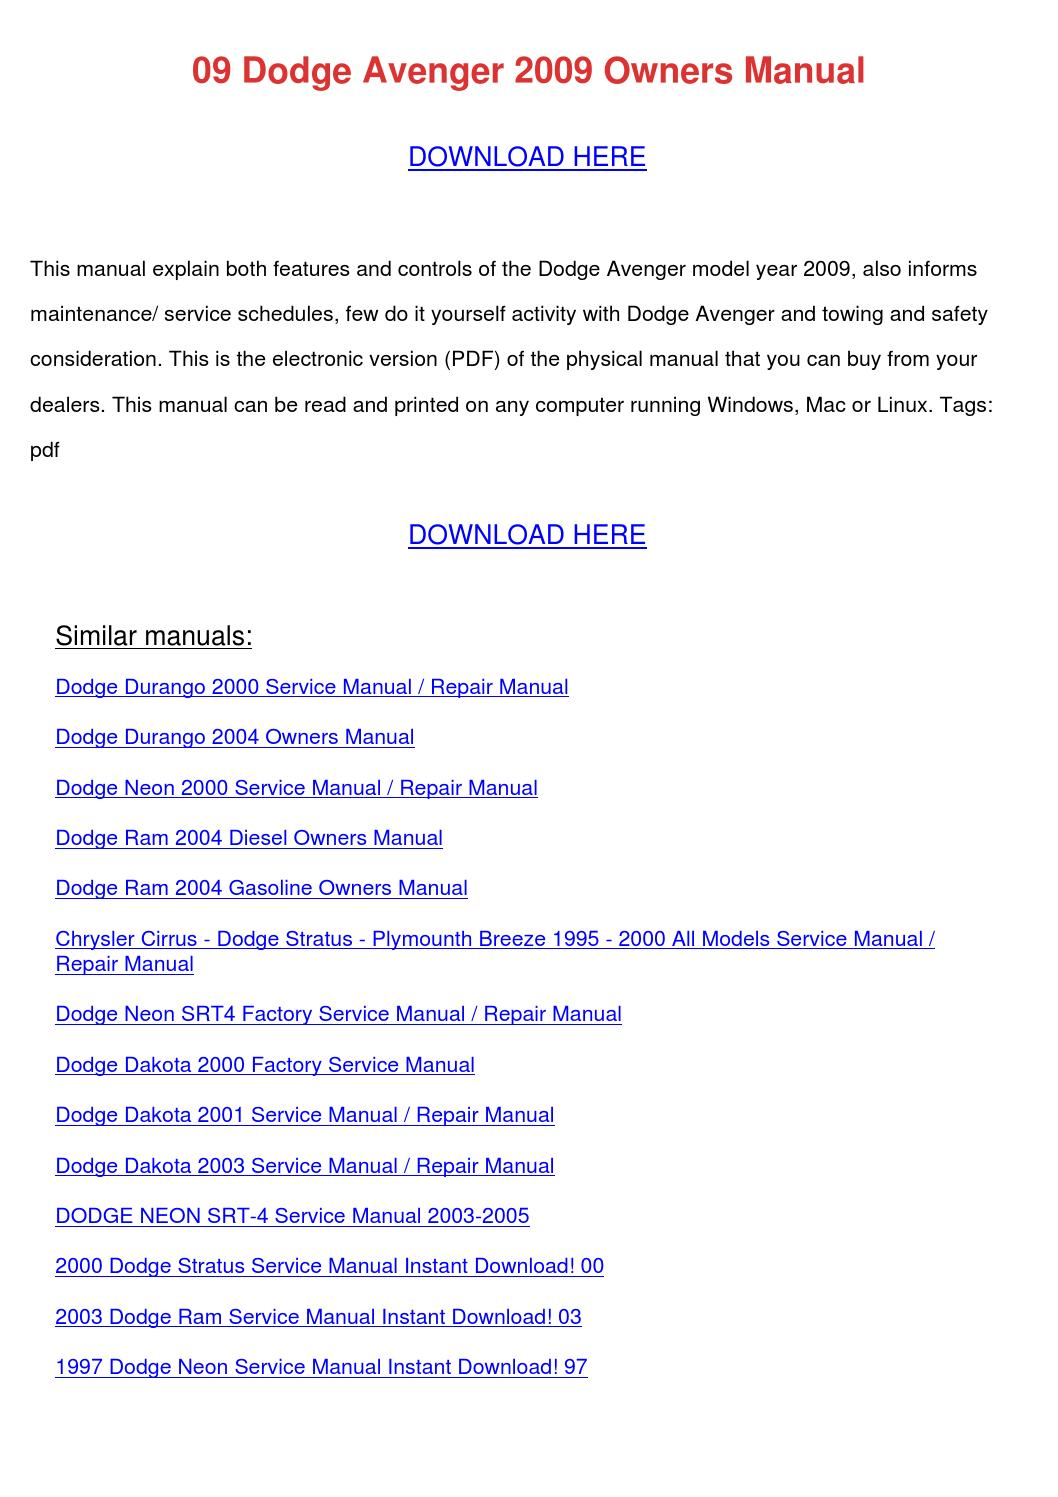 09 Dodge Avenger 2009 Owners Manual by AngelicaWoodward - issuu